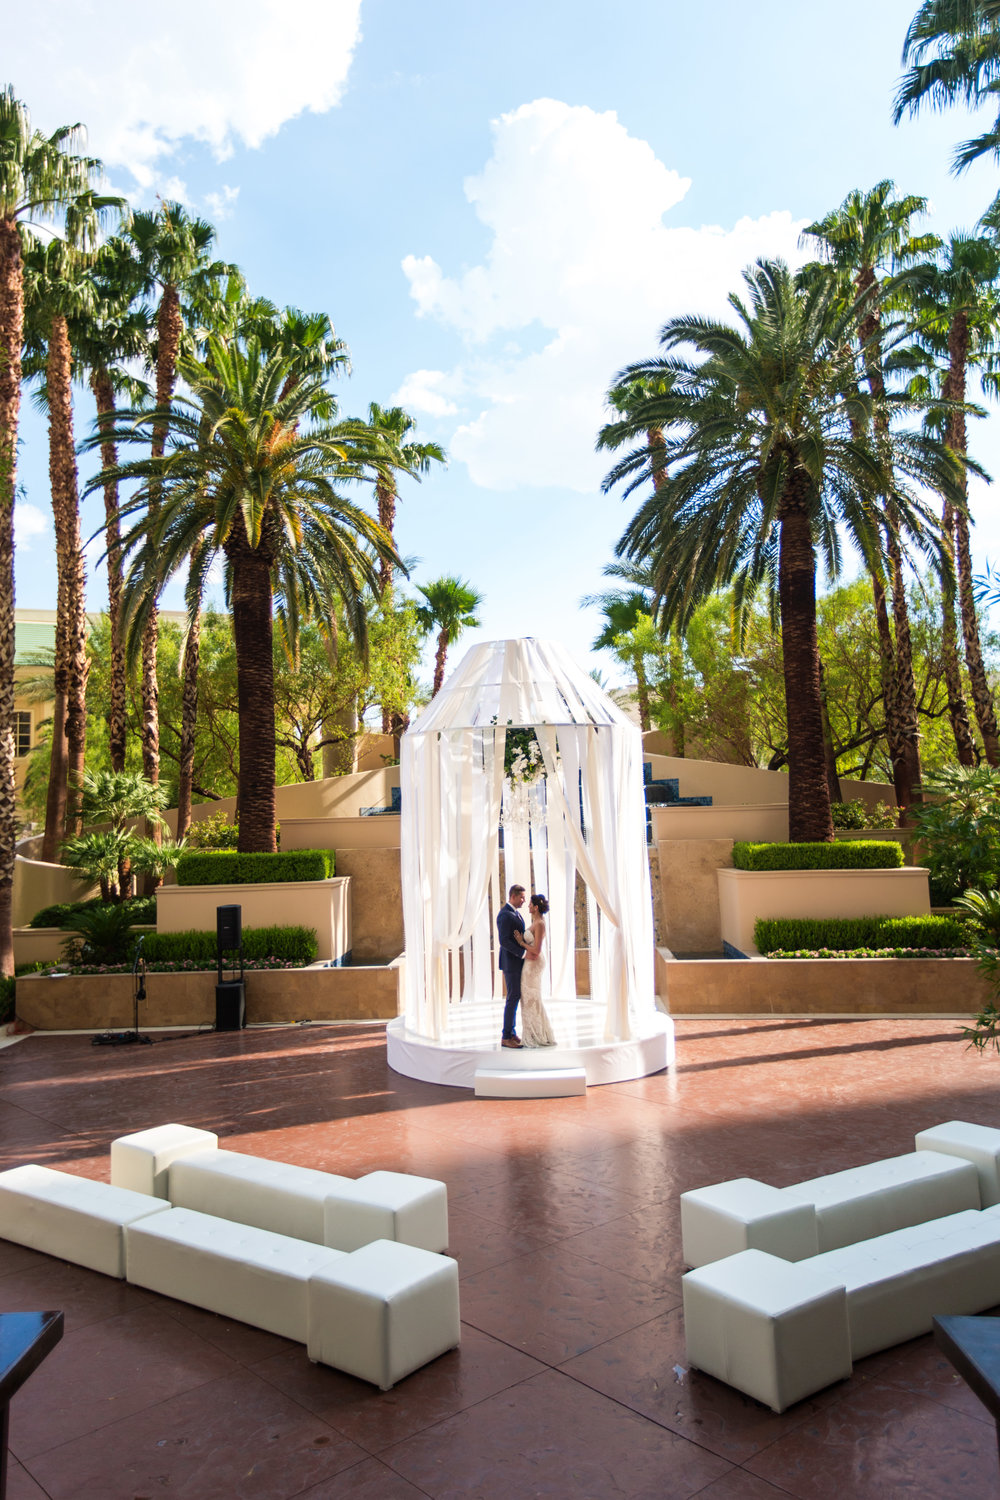 Bride and groom at ceremony location.  Wedding Planning by  Andrea Eppolito Events   ·  Photography by  Shandro Photo    ·  Wedding Venue  Four Seasons Las Vegas   ·  Floral and Decor by  Destination by Design   ·  Cake by  Four Seasons Las Vegas   ·  Chandeliers and Lighting by  LED Unplugged   ·  Dress by  Berta